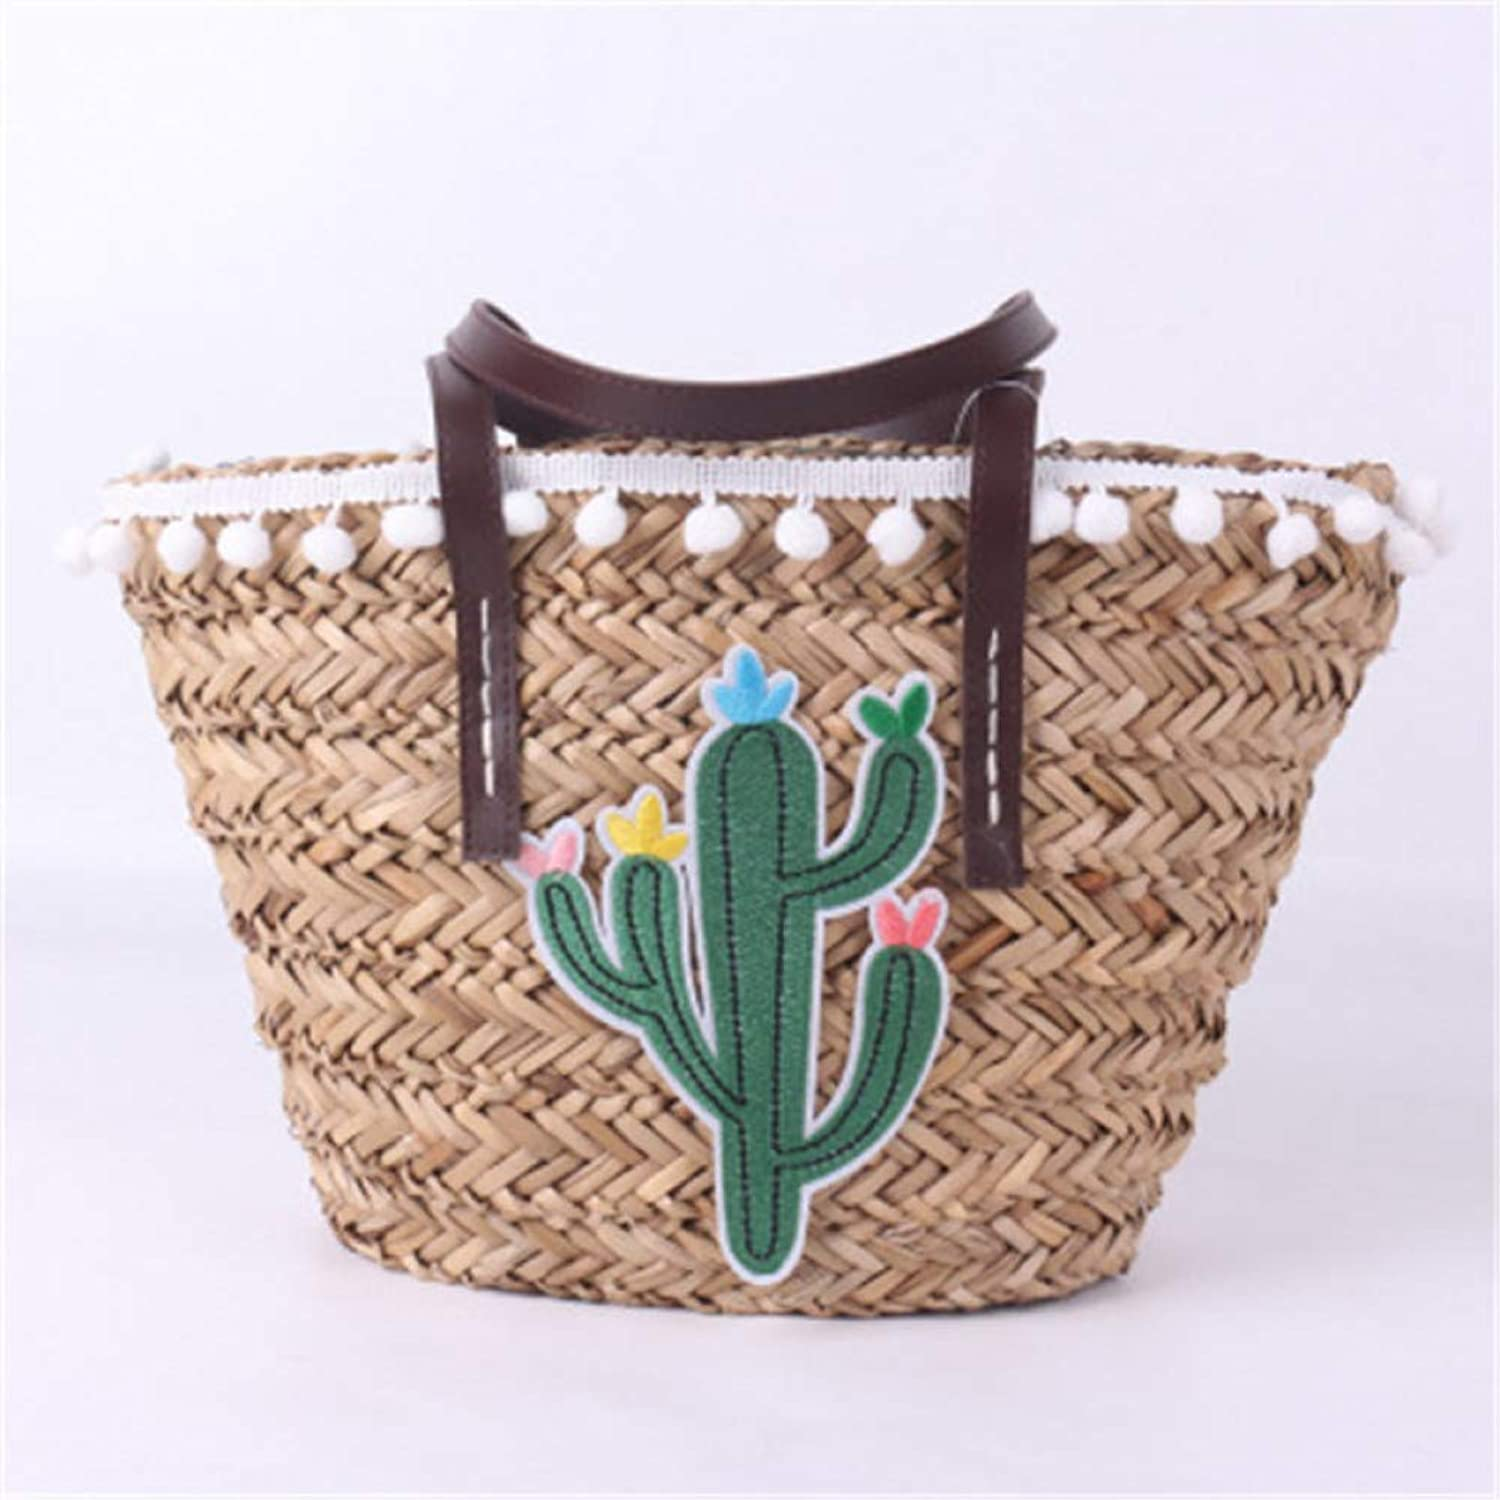 LHKFNU New Handbags Straw Bag Brands Woven Beach Bag